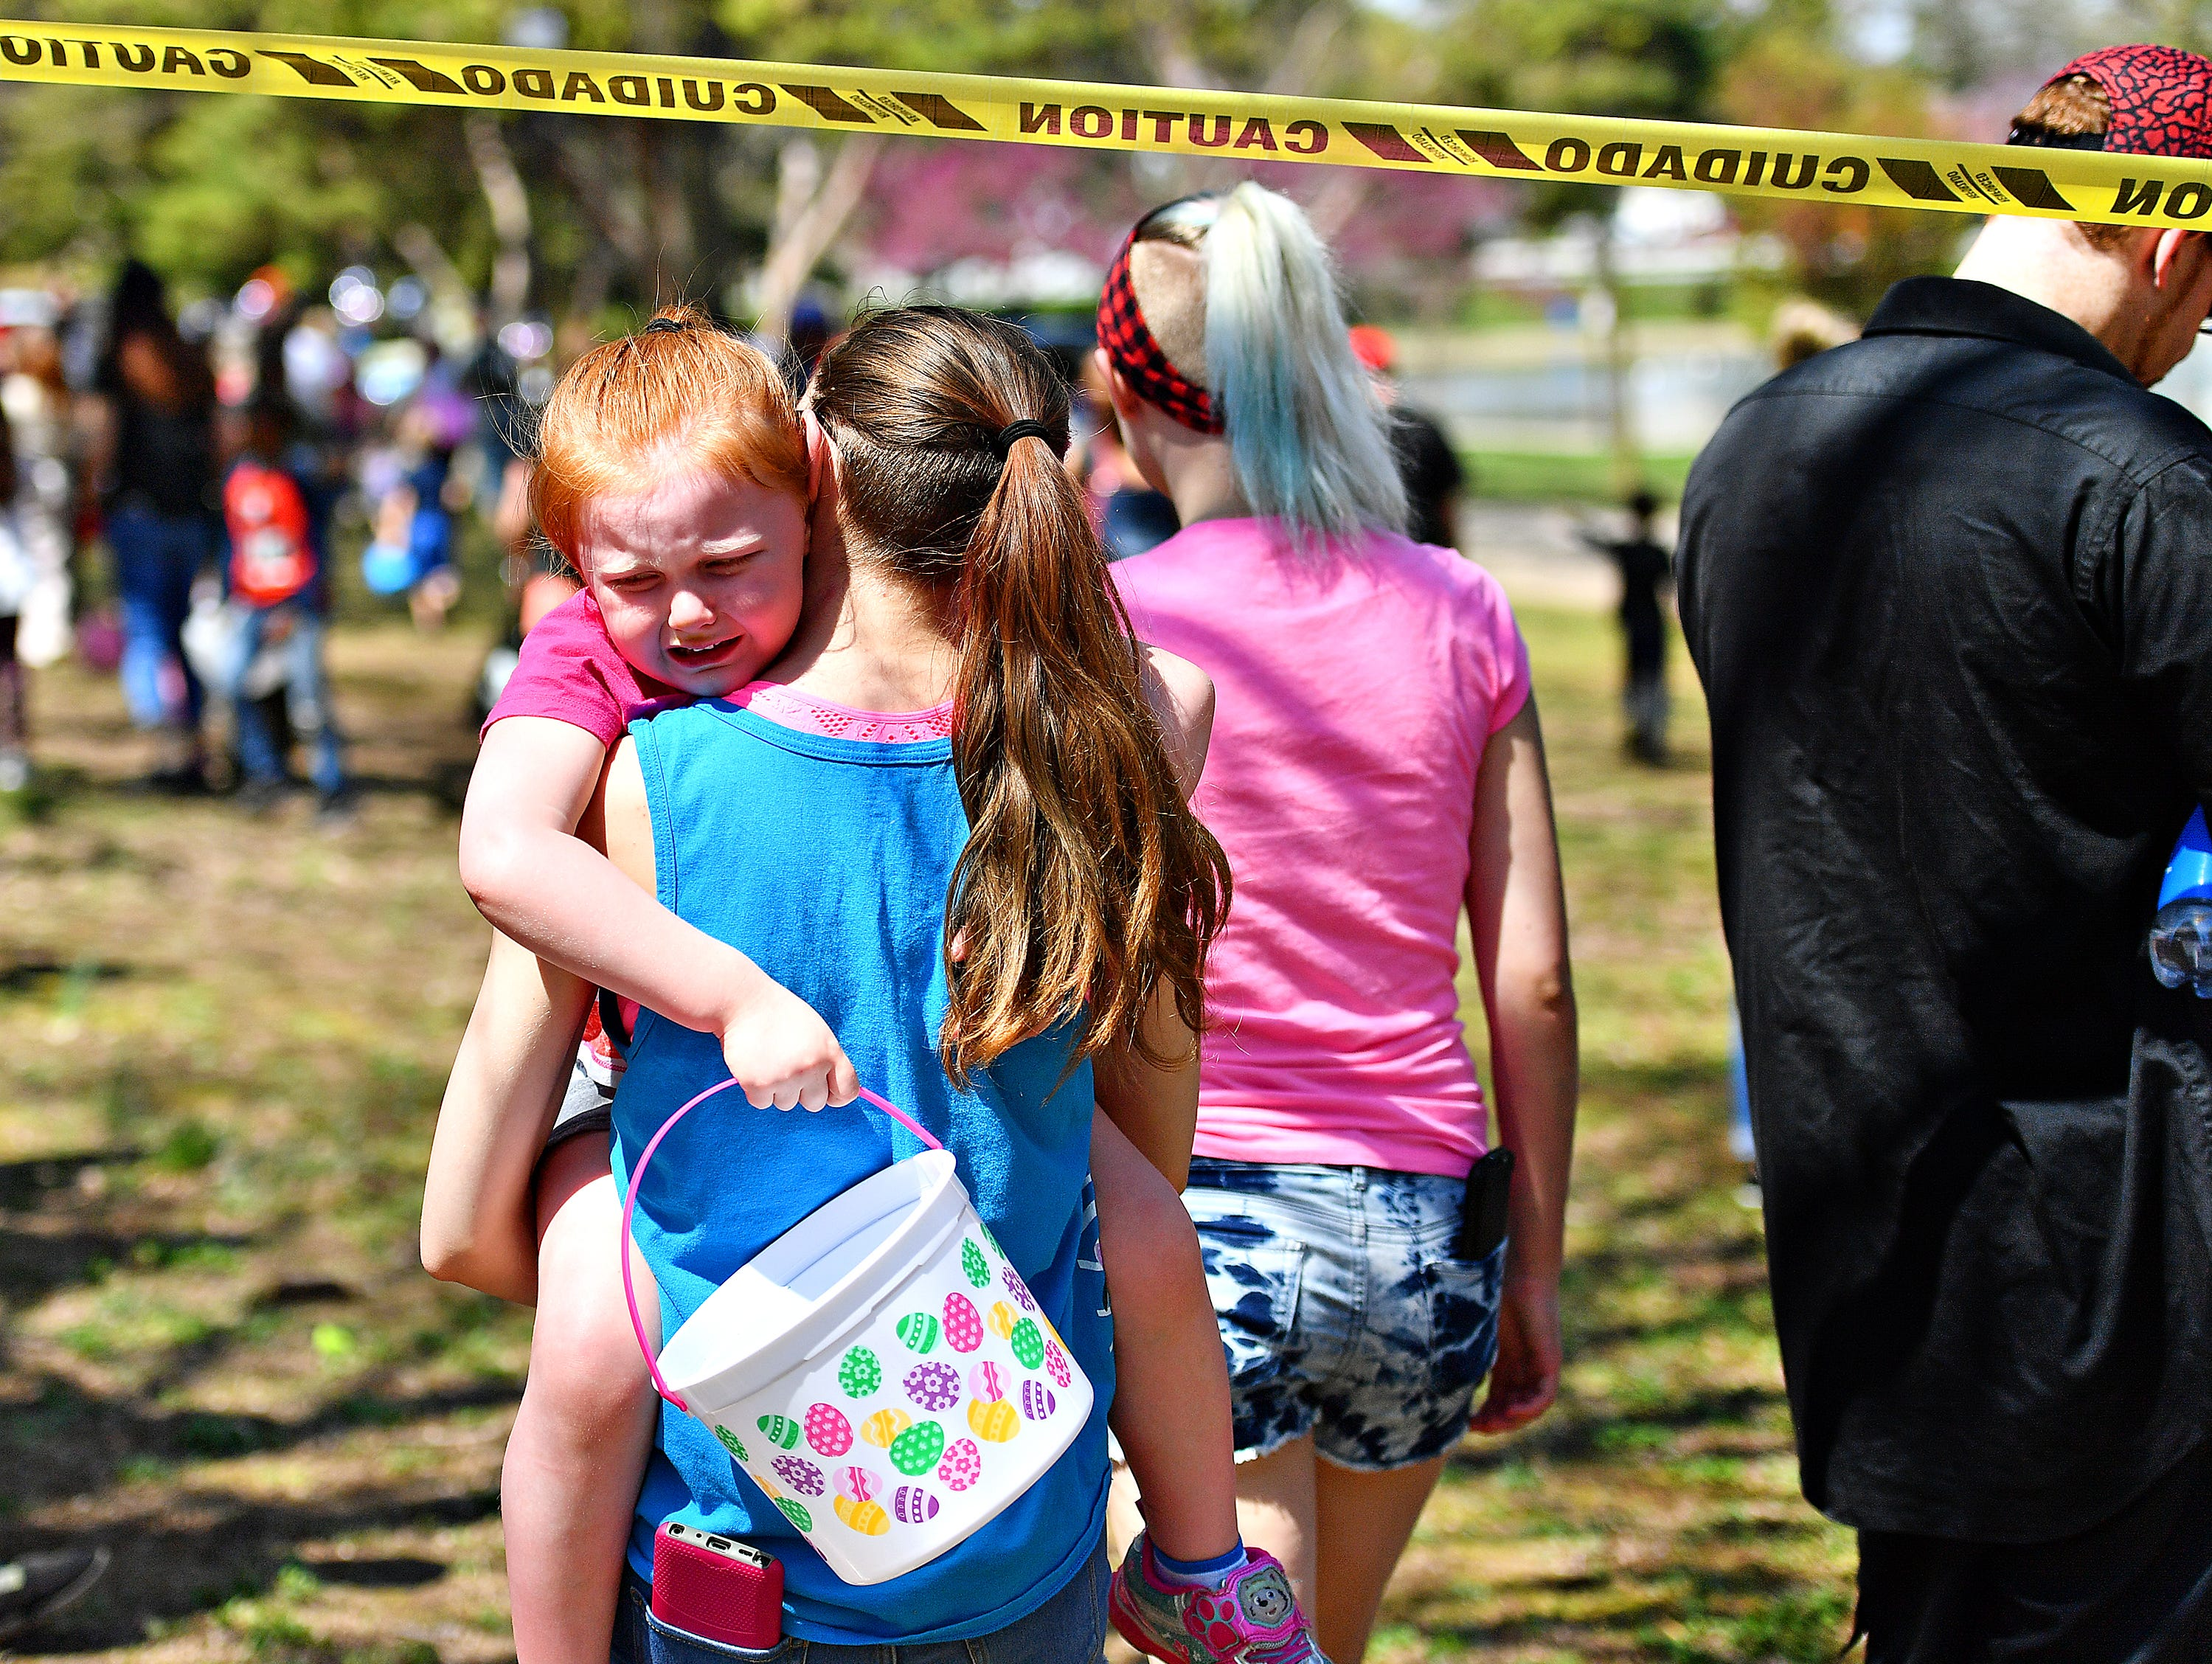 Saige Cotterman, 17, of New Salem, carries her crying sister Kaidence Giuiffre, 4, following the 44th Annual York City Easter Egg Hunt at Kiwanis Lake in York City, Saturday, April 13, 2019. Dawn J. Sagert photo